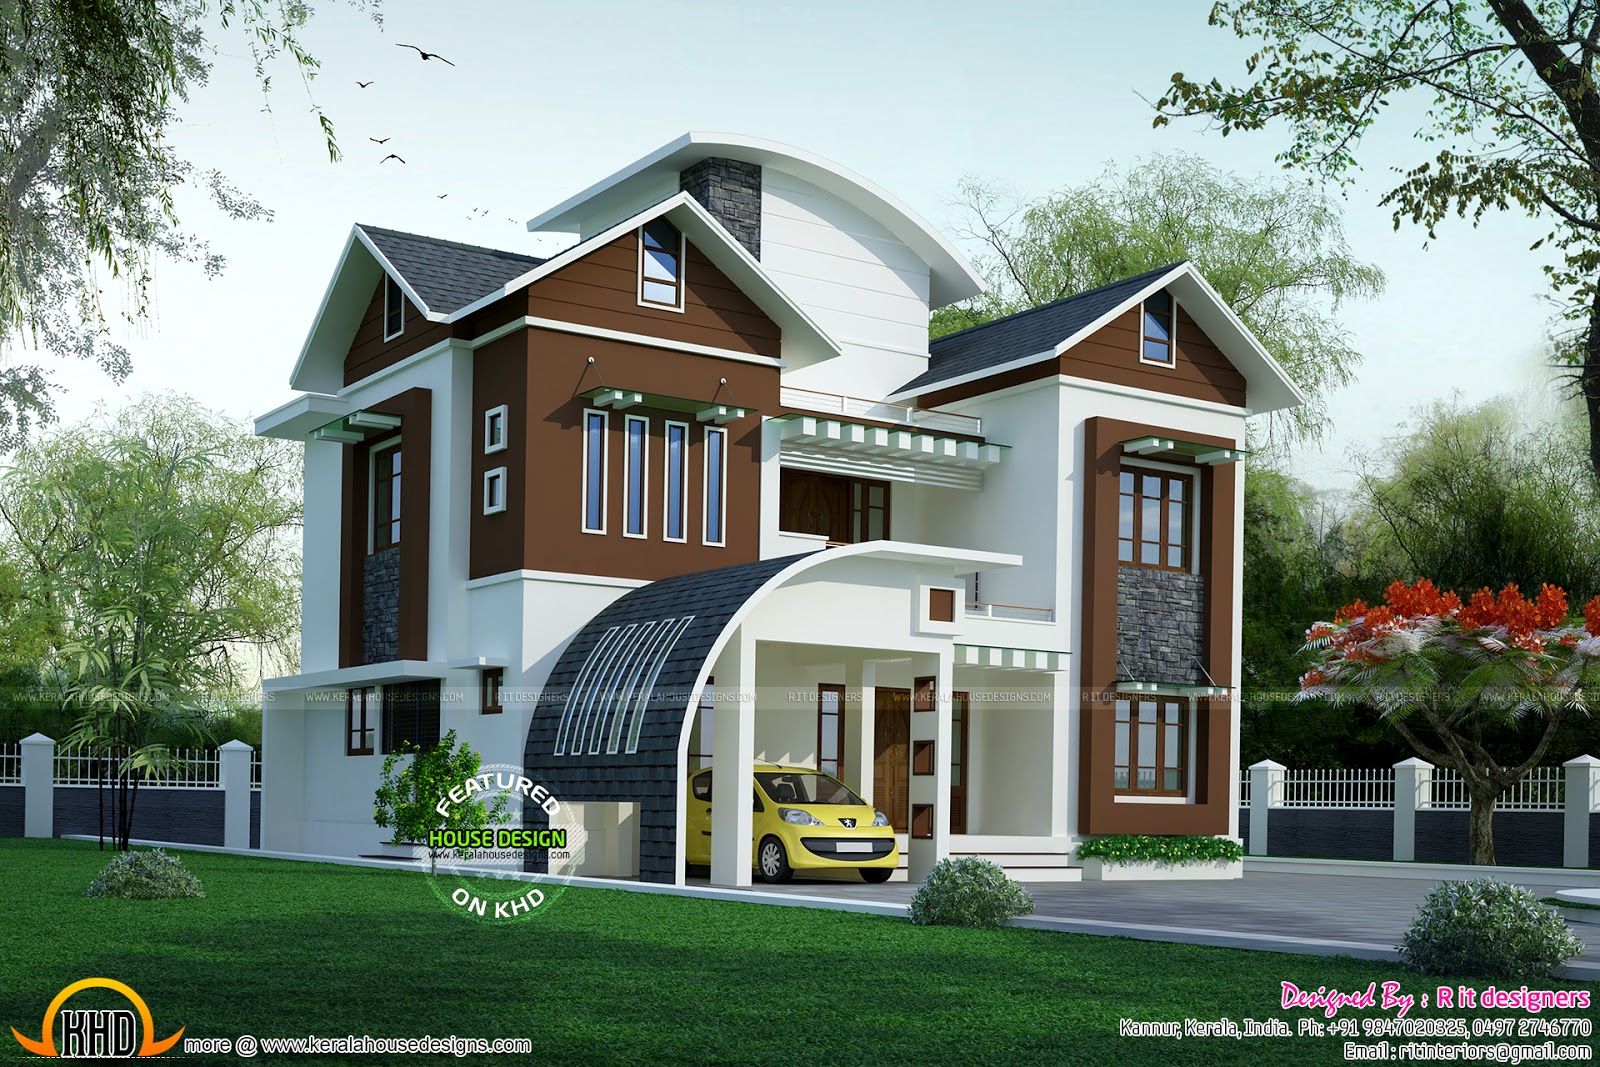 Classic single storied western model home keralahousedesigns for Car porch designs for houses